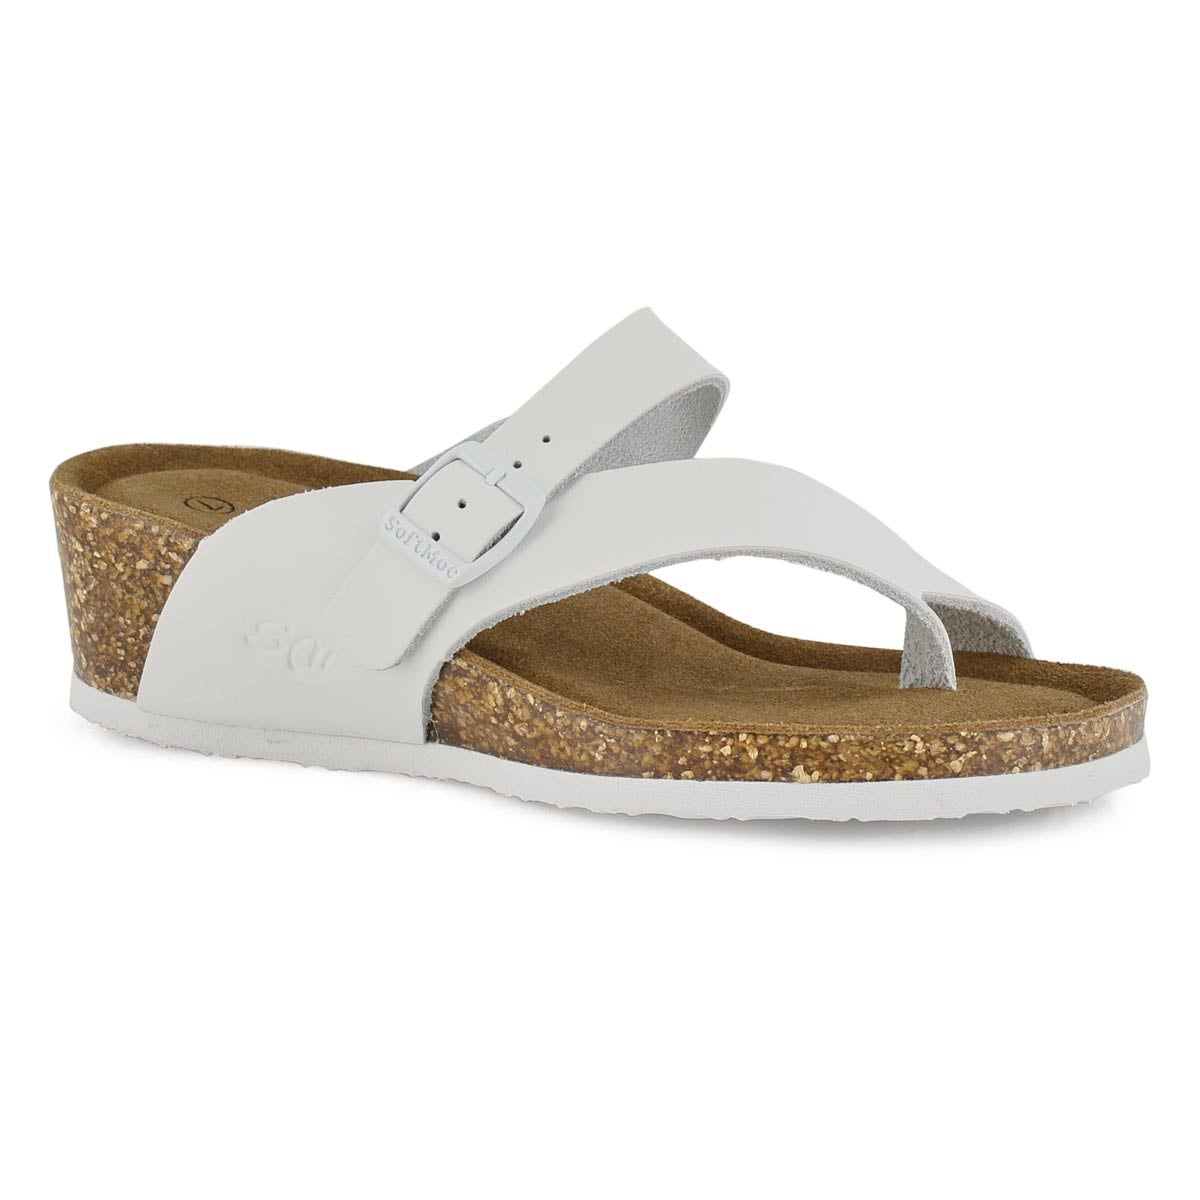 Women's ANDREA 5 white wedge sandals